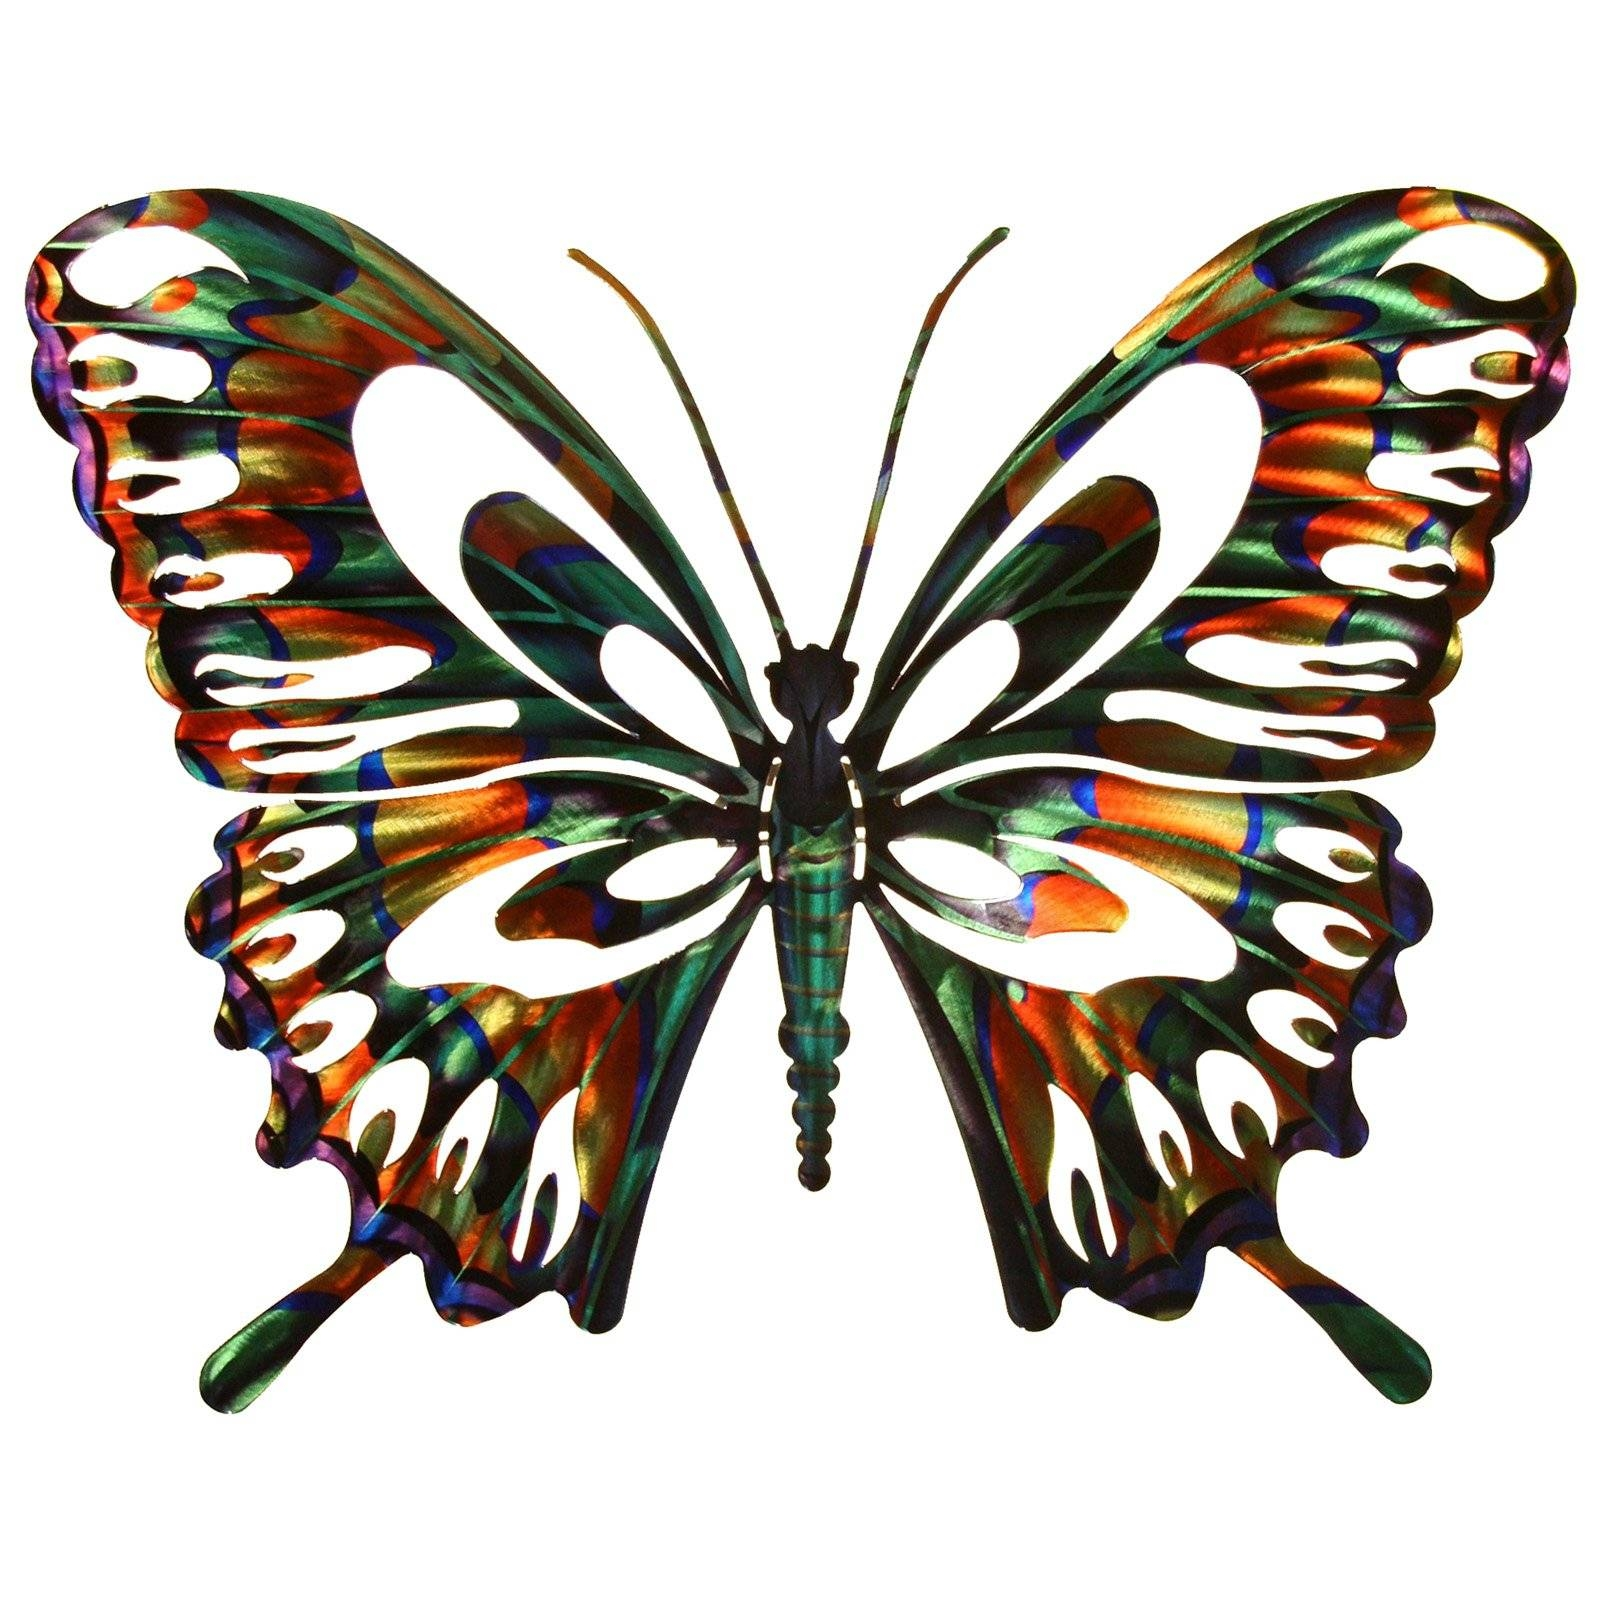 3D Butterfly Metal Outdoor Wall Art | Hayneedle Within Most Up To Date Metal Wall Art For Outdoors (View 1 of 20)